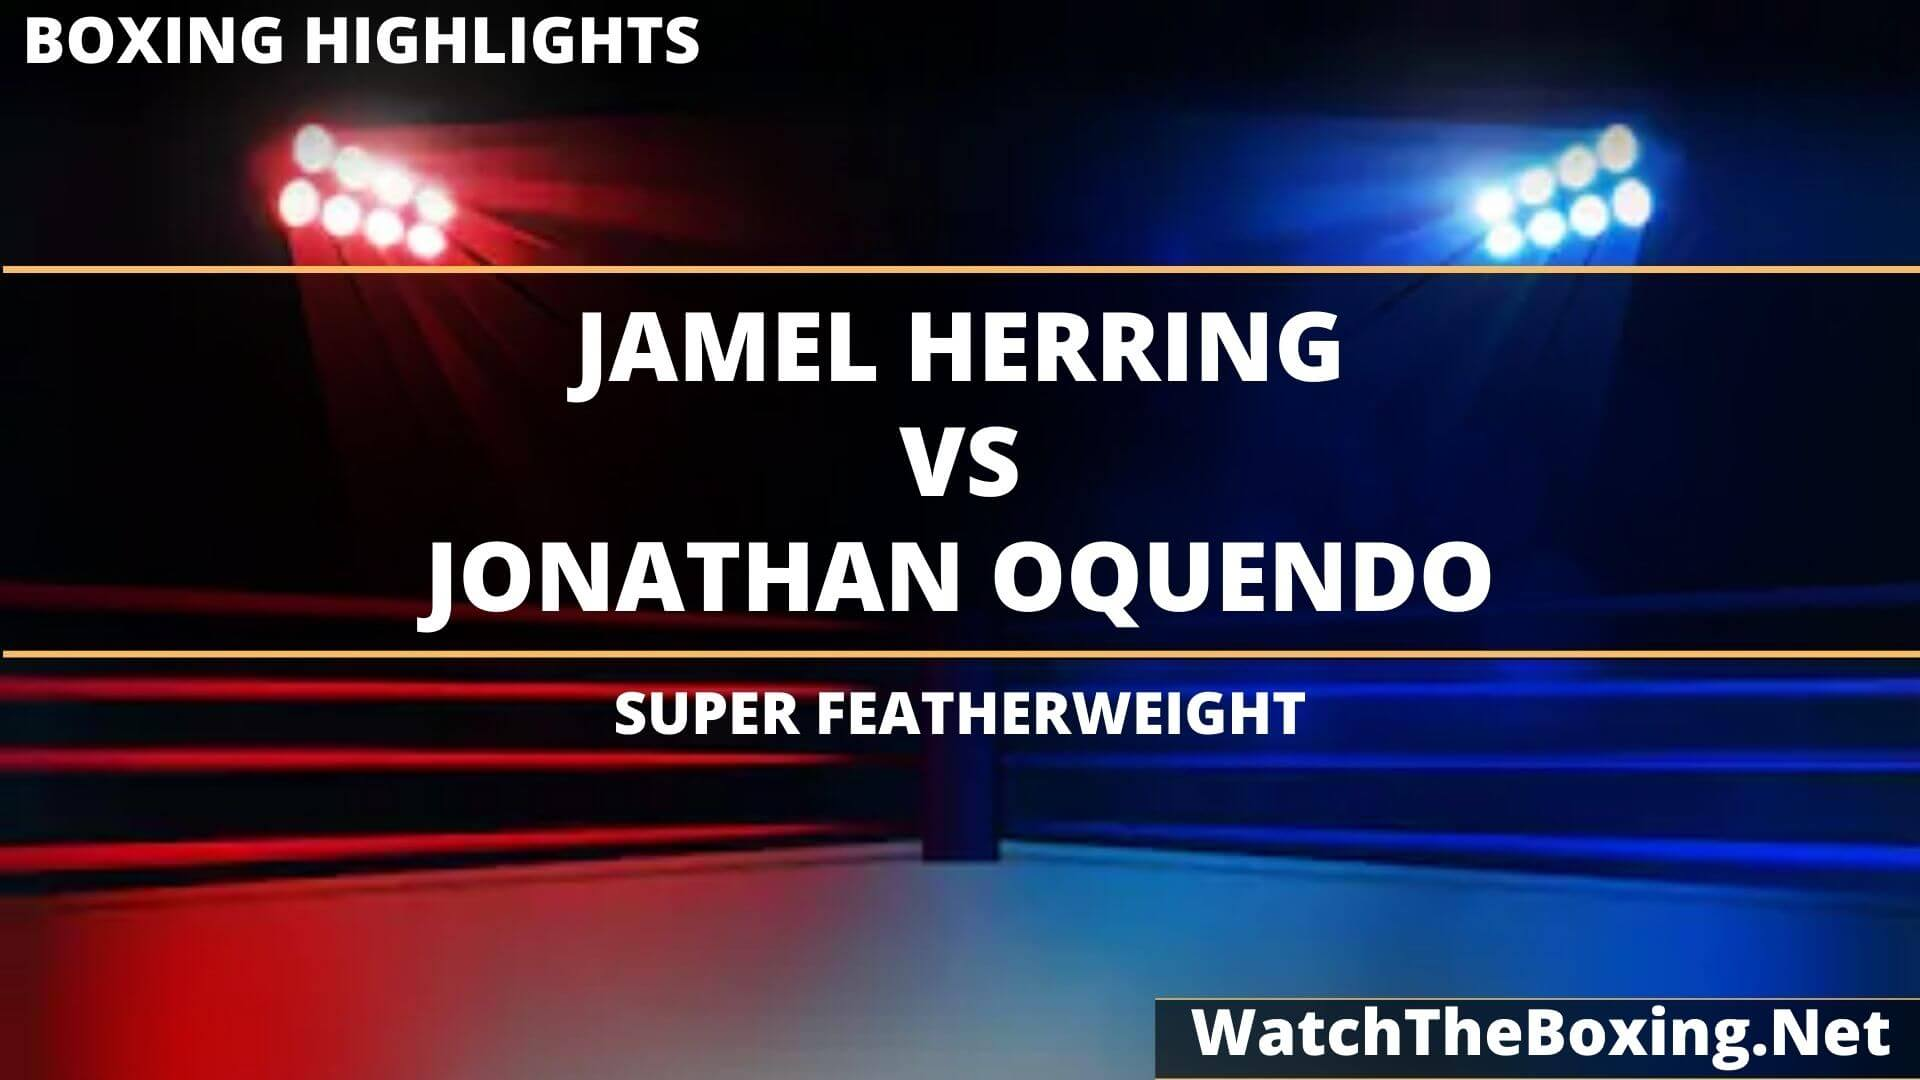 Jamel Herring Vs Jonathan Oquendo Highlights 2020 Super Featherweight